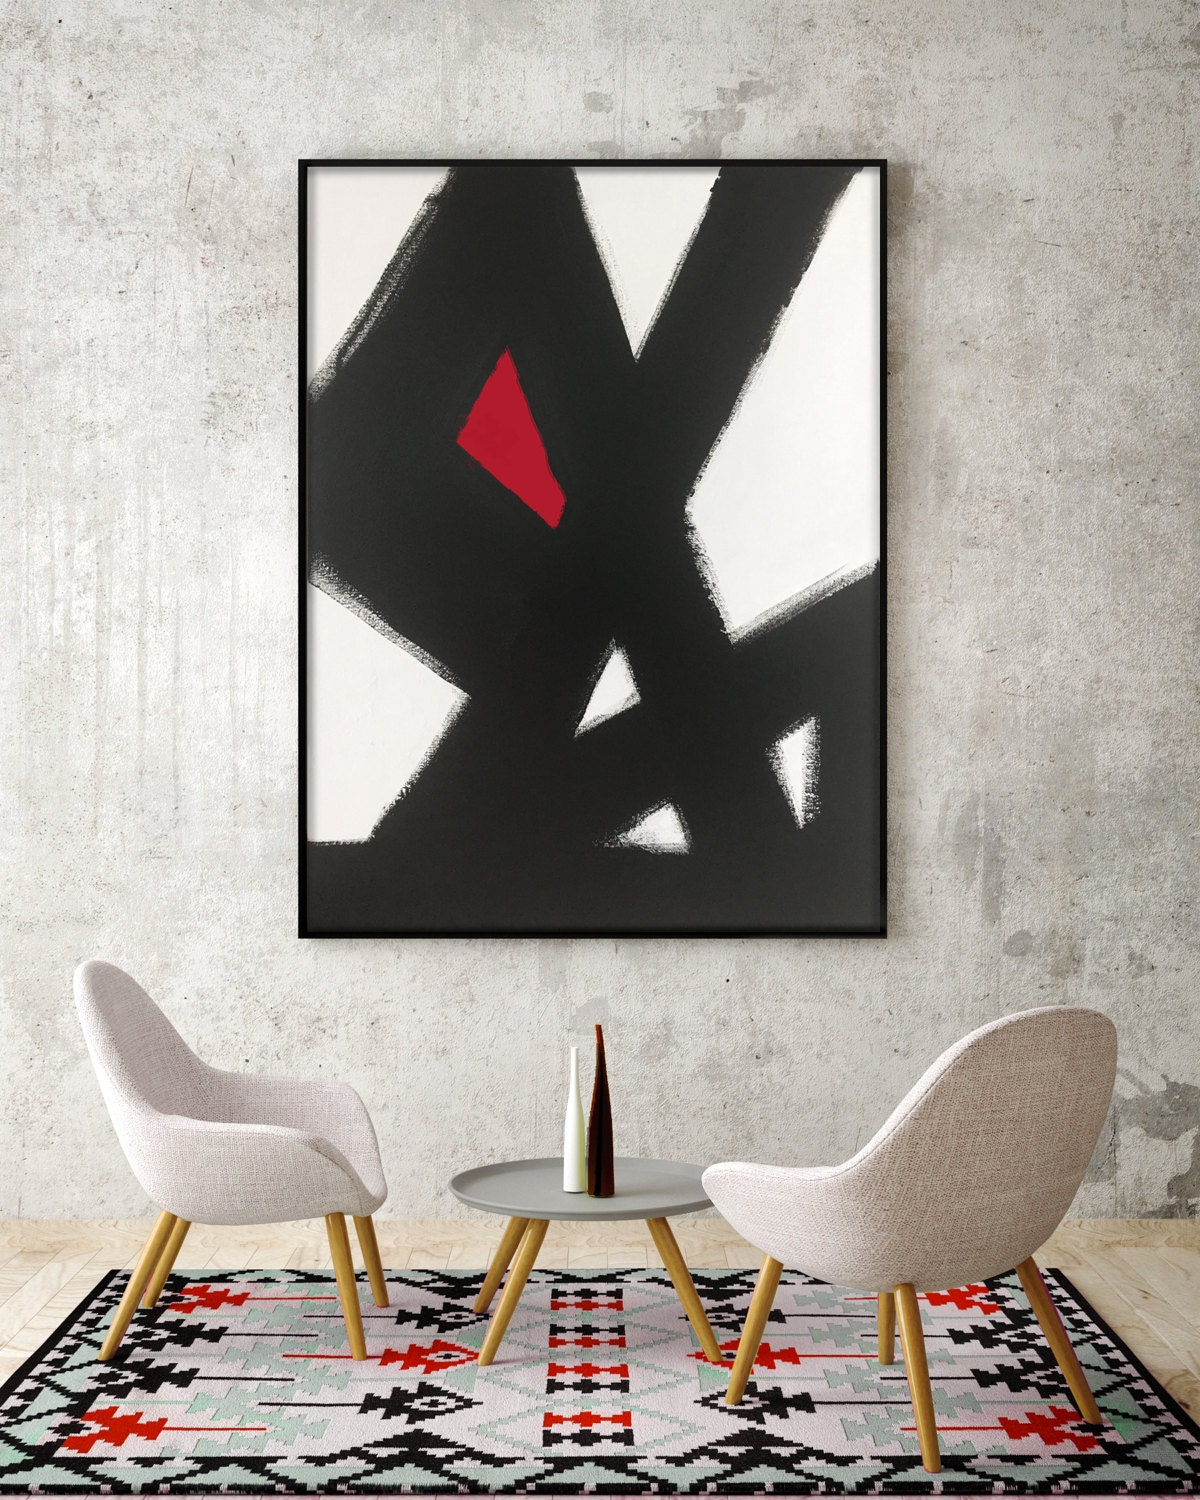 Black white red dining room - Abstract Black White Slash No 2 Red Modern Living Room Art Modern Dining Room Art Modern Bedroom Art Large Canvas Black White Red Art Red